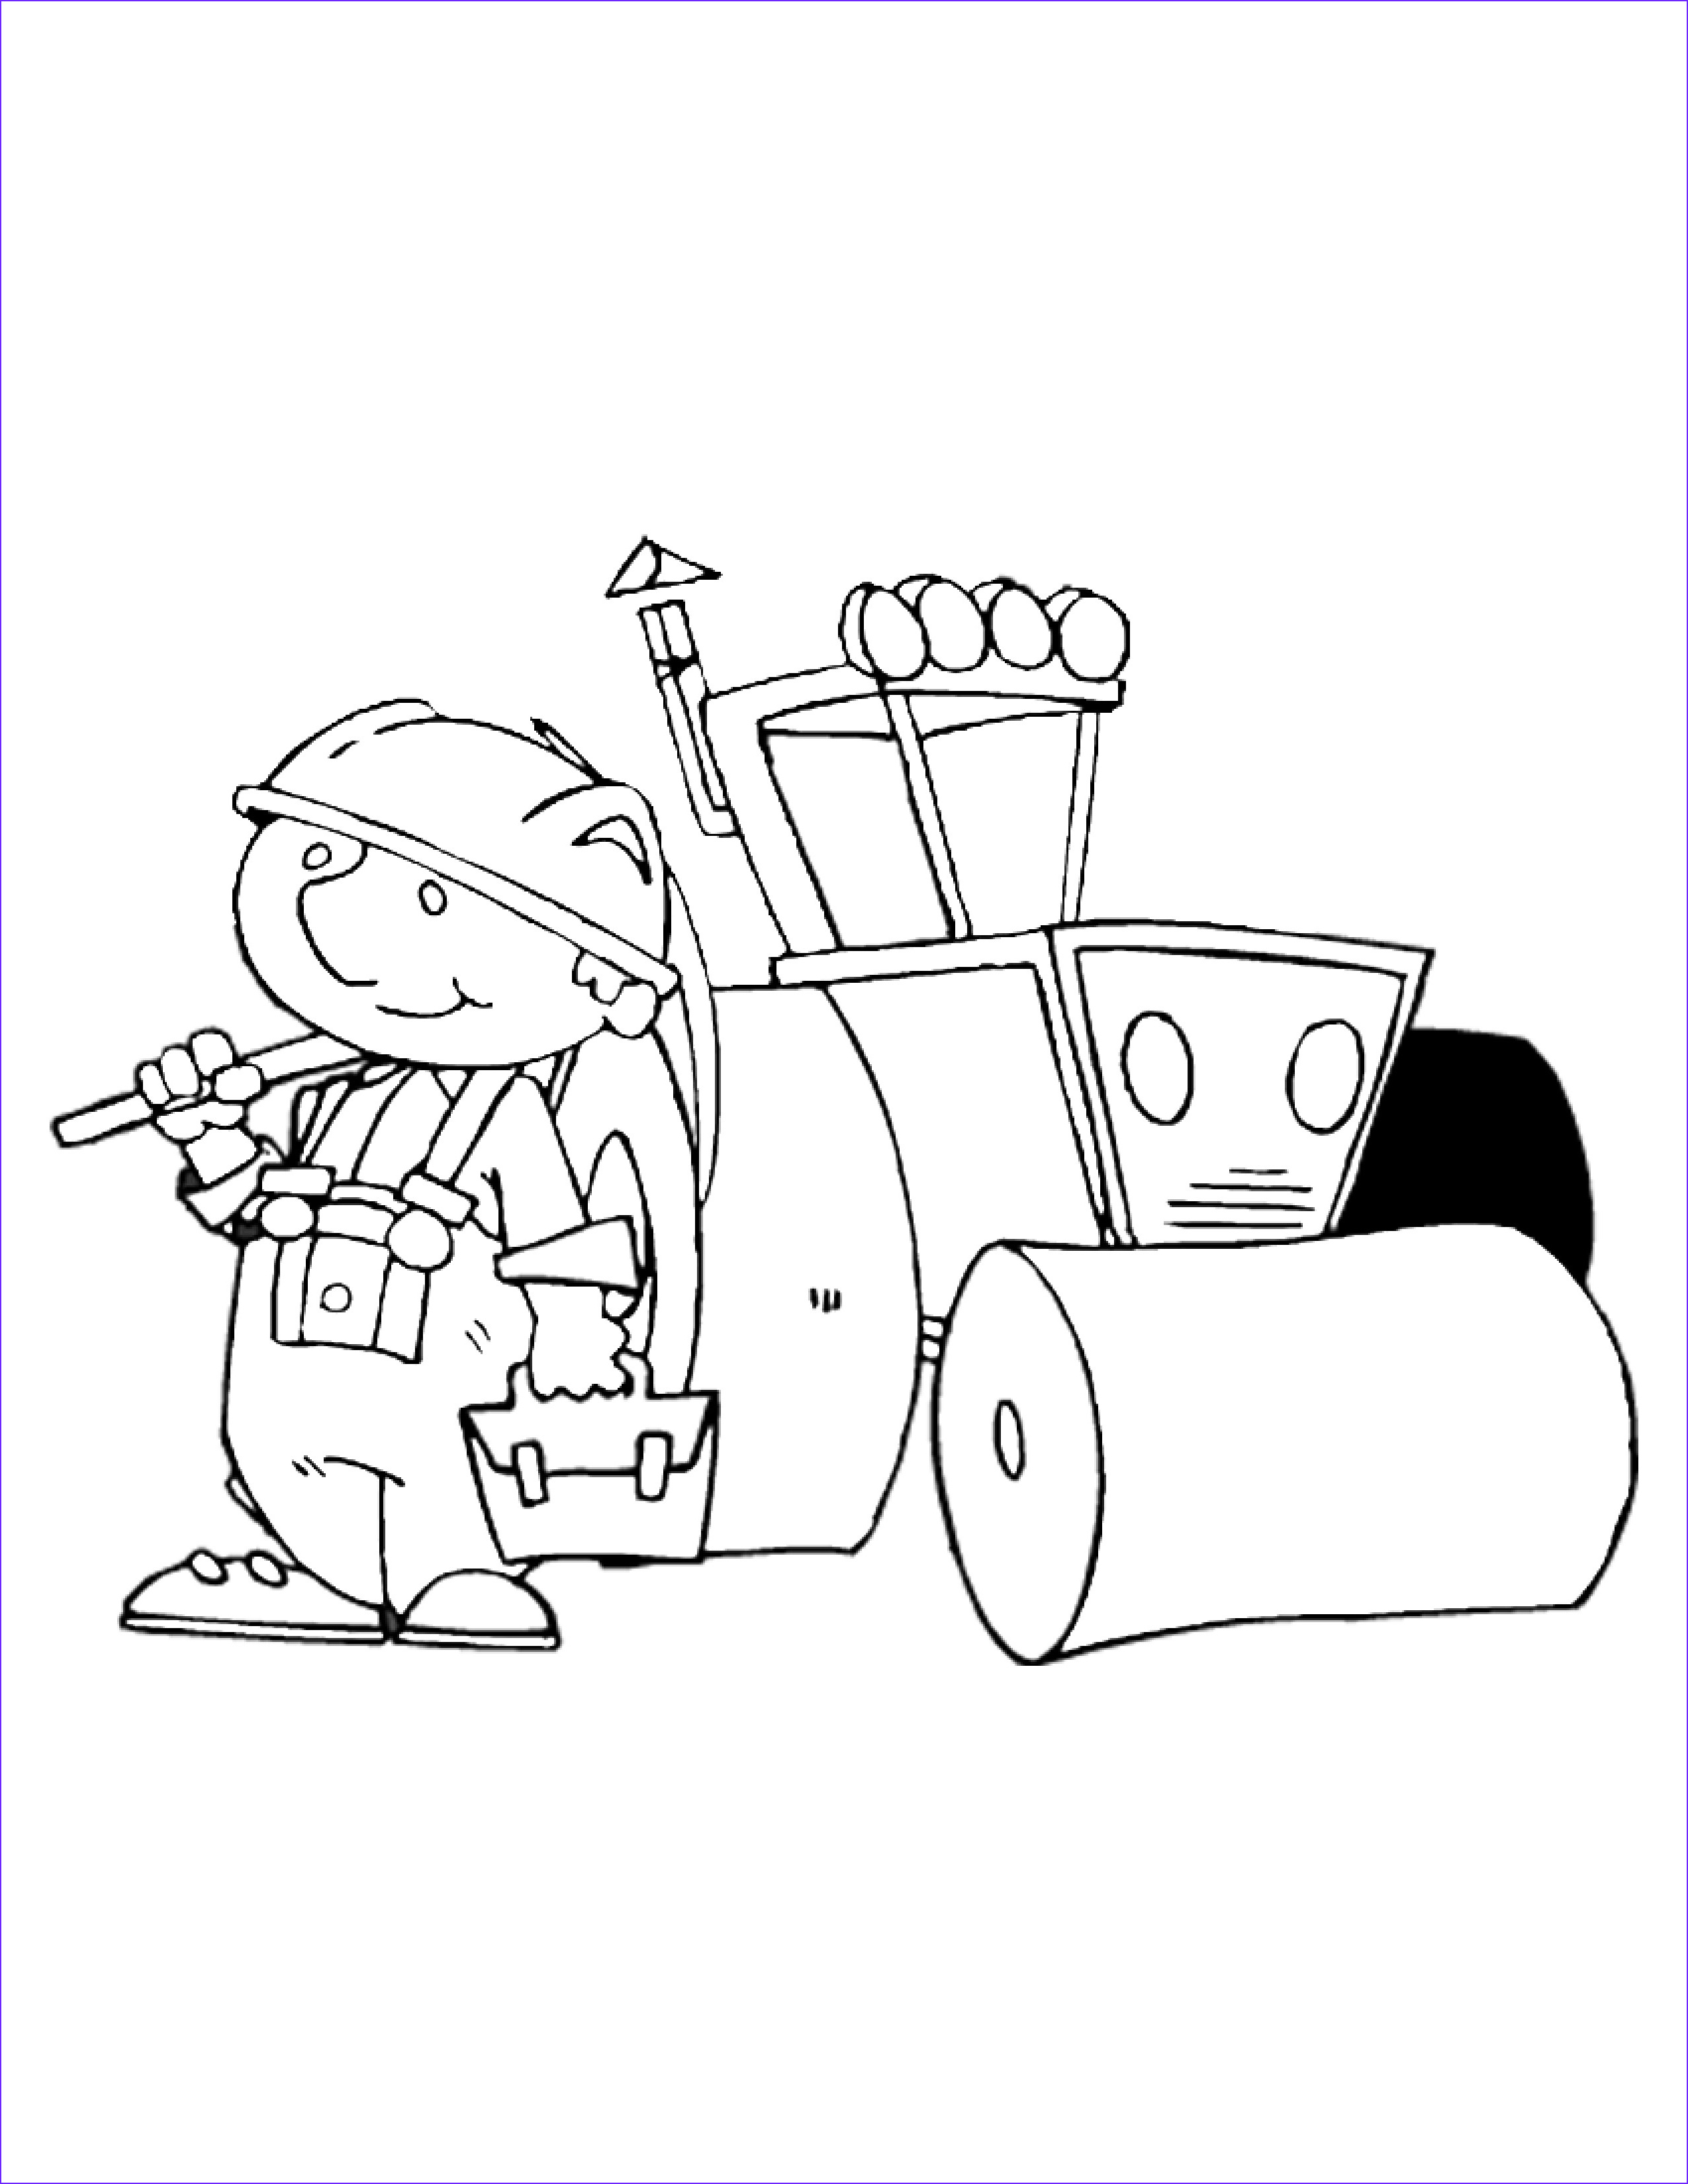 Construction Coloring Pages Best Of Photos Construction Equipment Coloring Pages